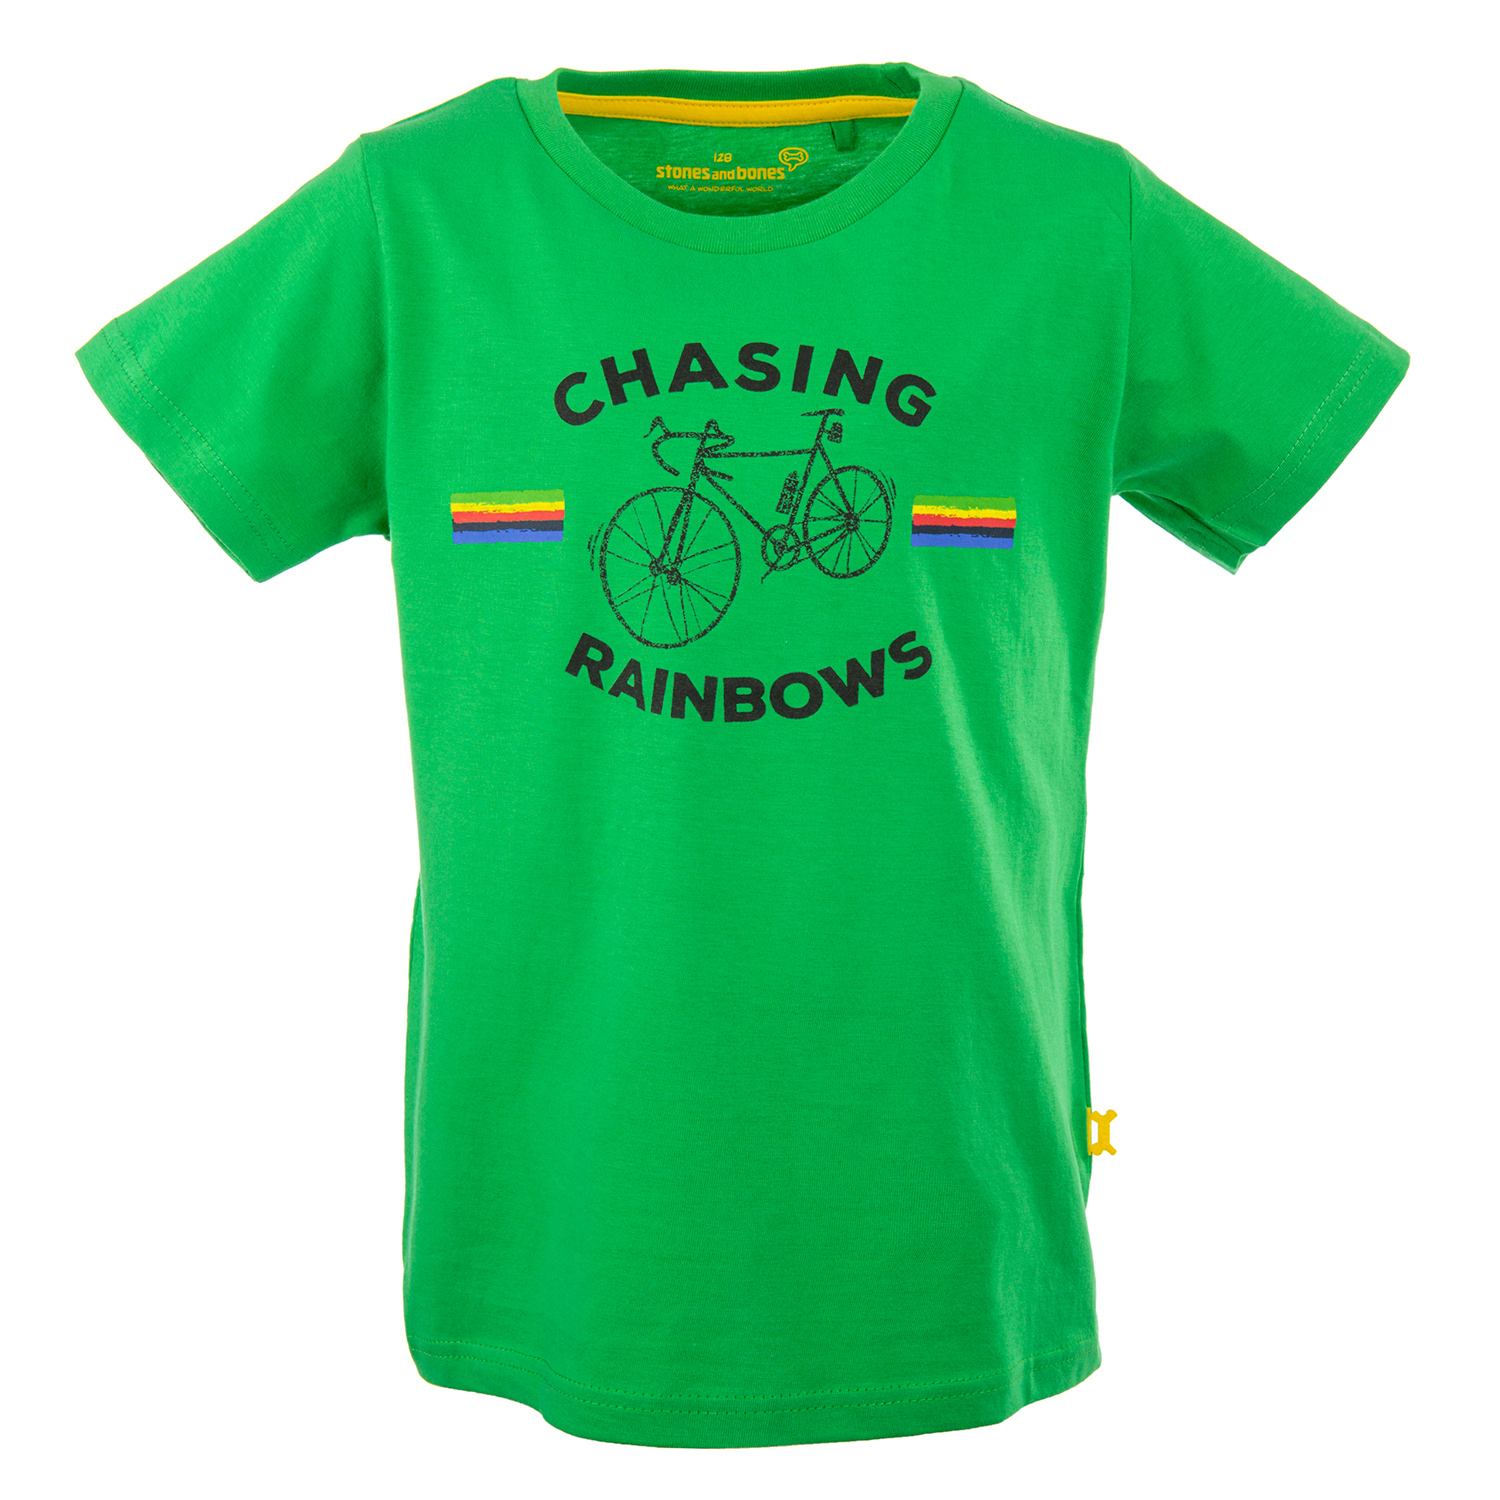 Russell - CHASING RAINBOWS green